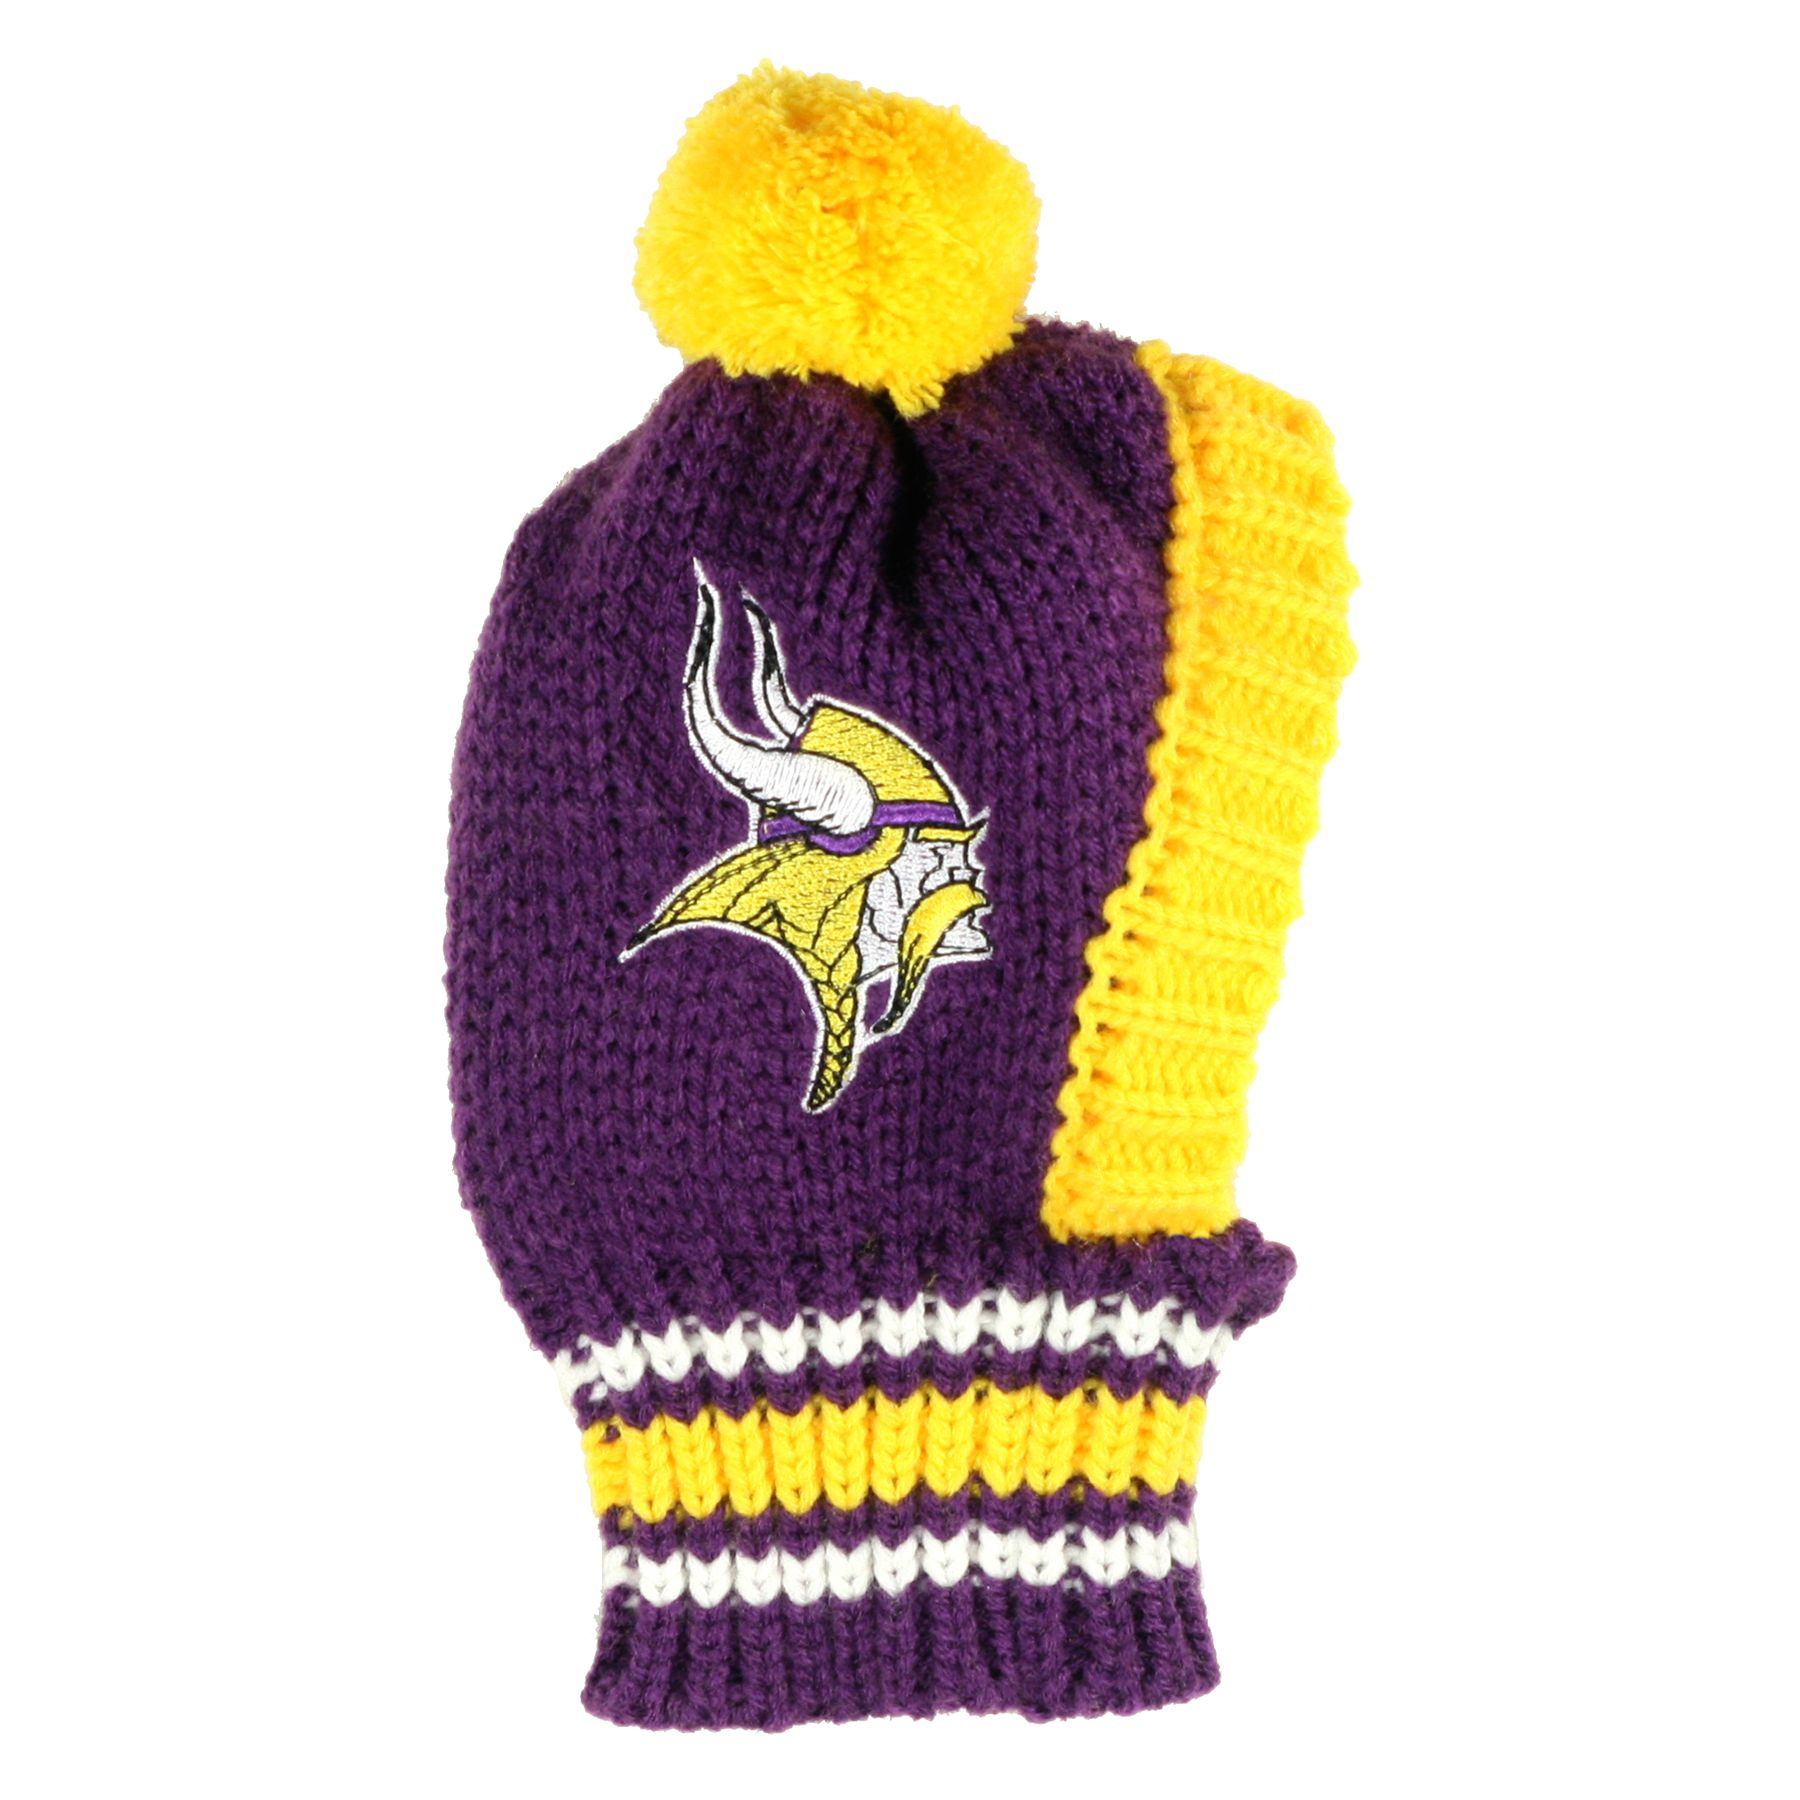 Minnesota Vikings NFL Knit Hat size: Medium, Hip Doggie photo